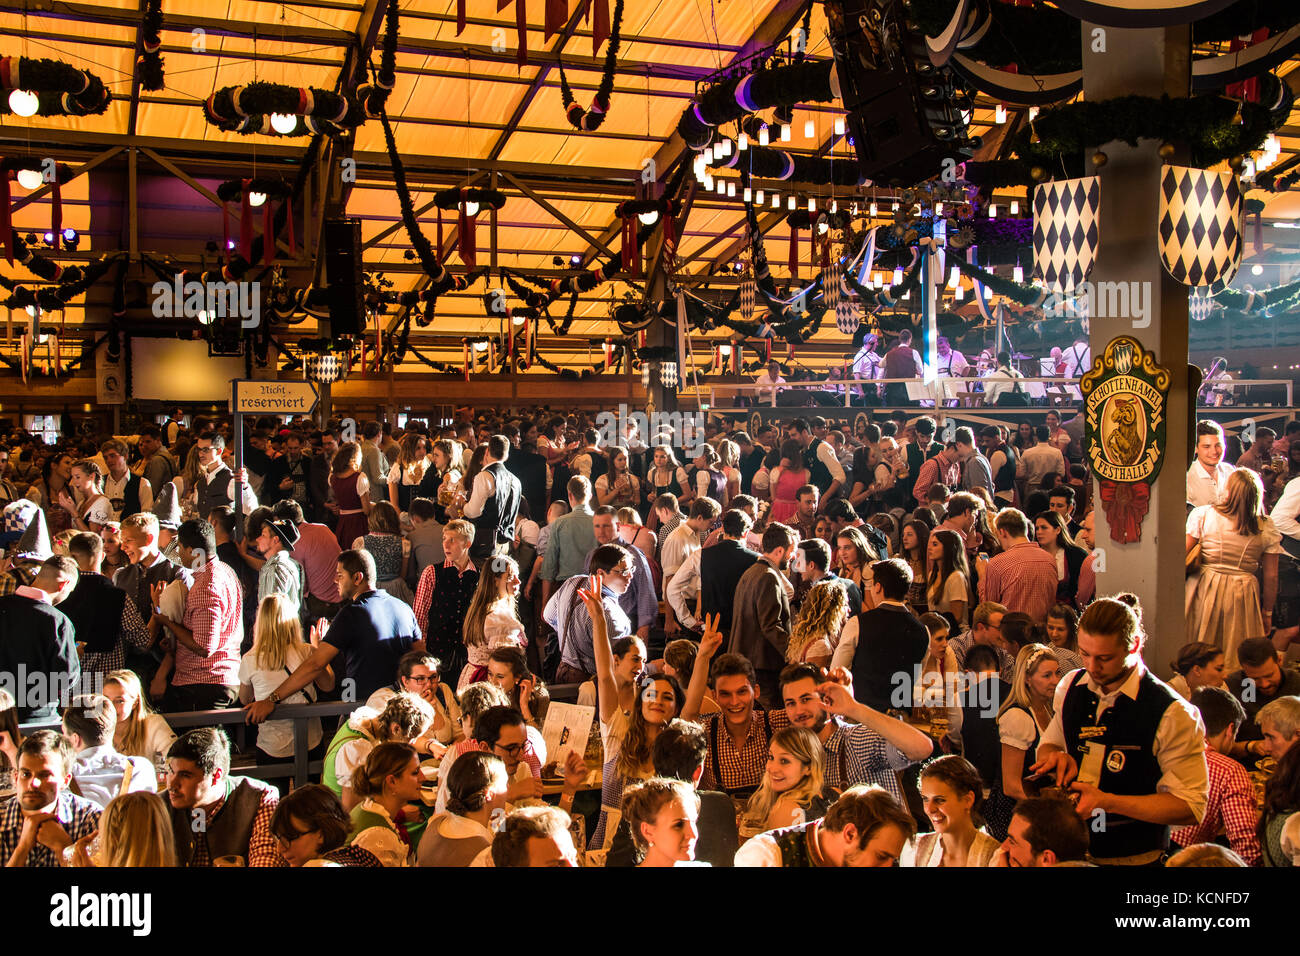 Octoberfest, Munich, Germany - Stock Image